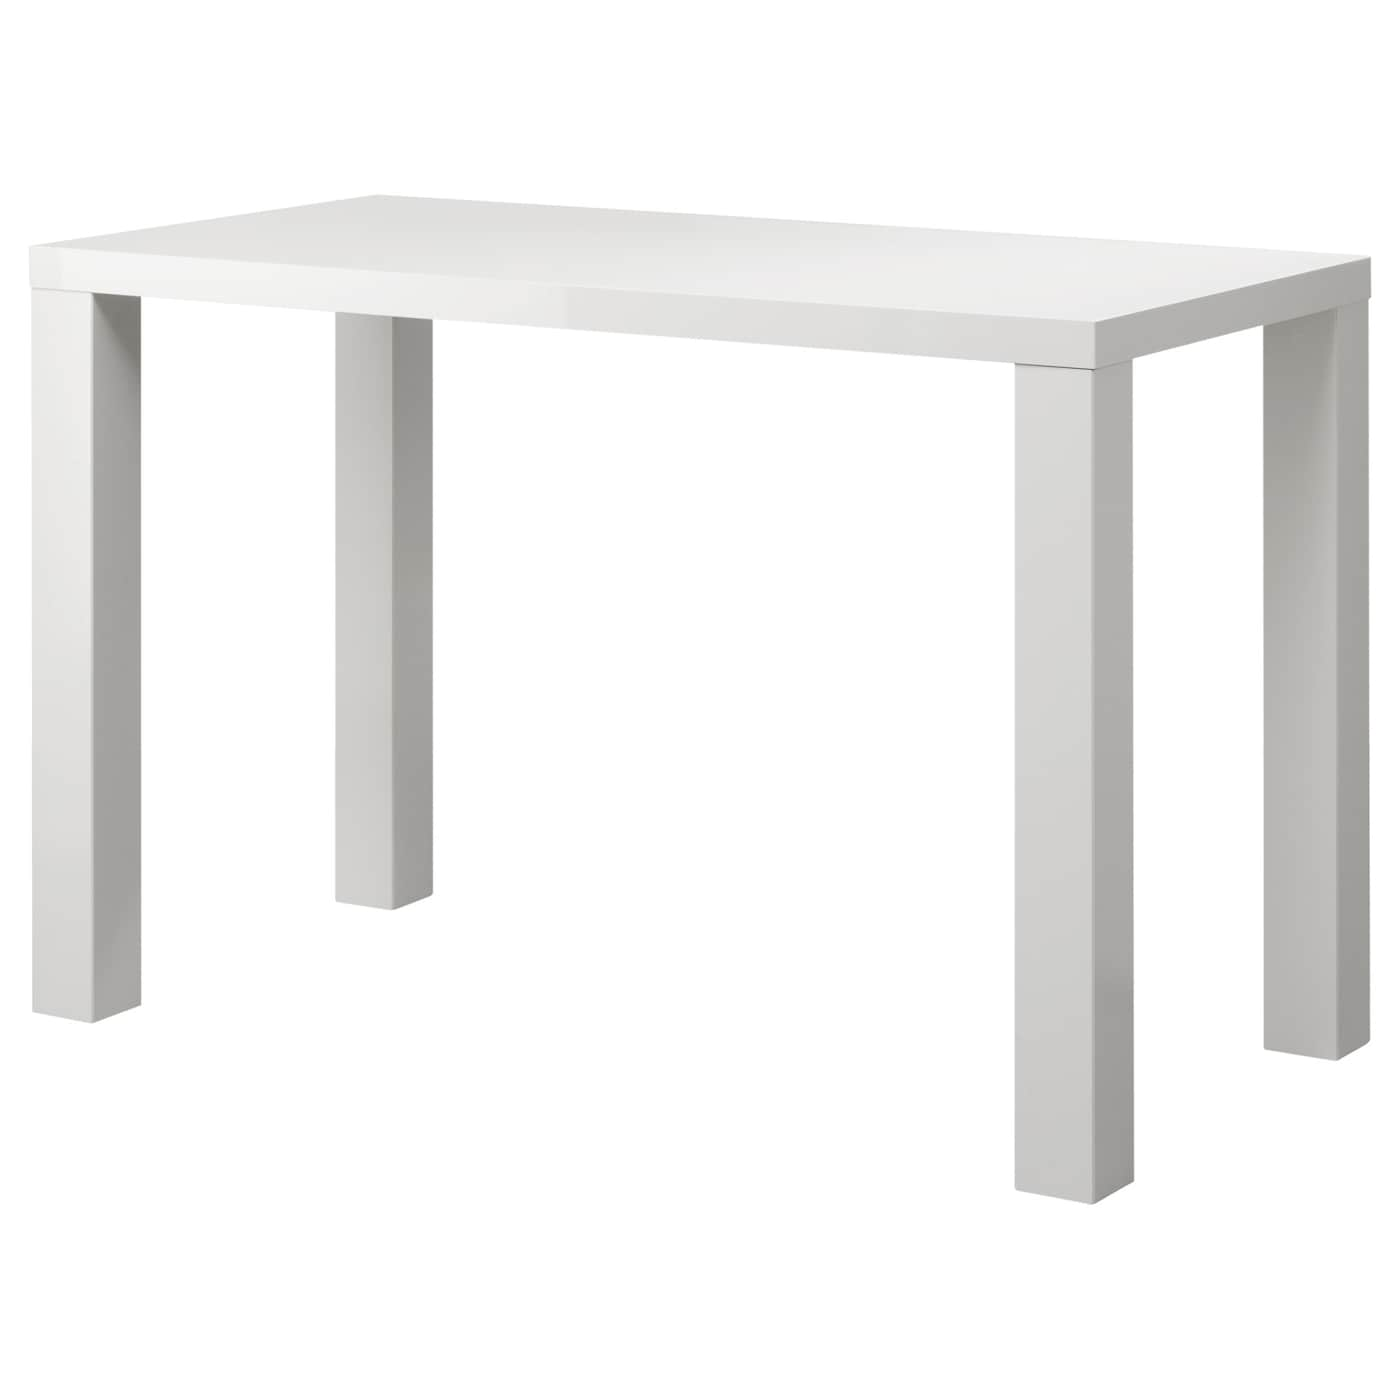 Ikea Toresund Bar Table